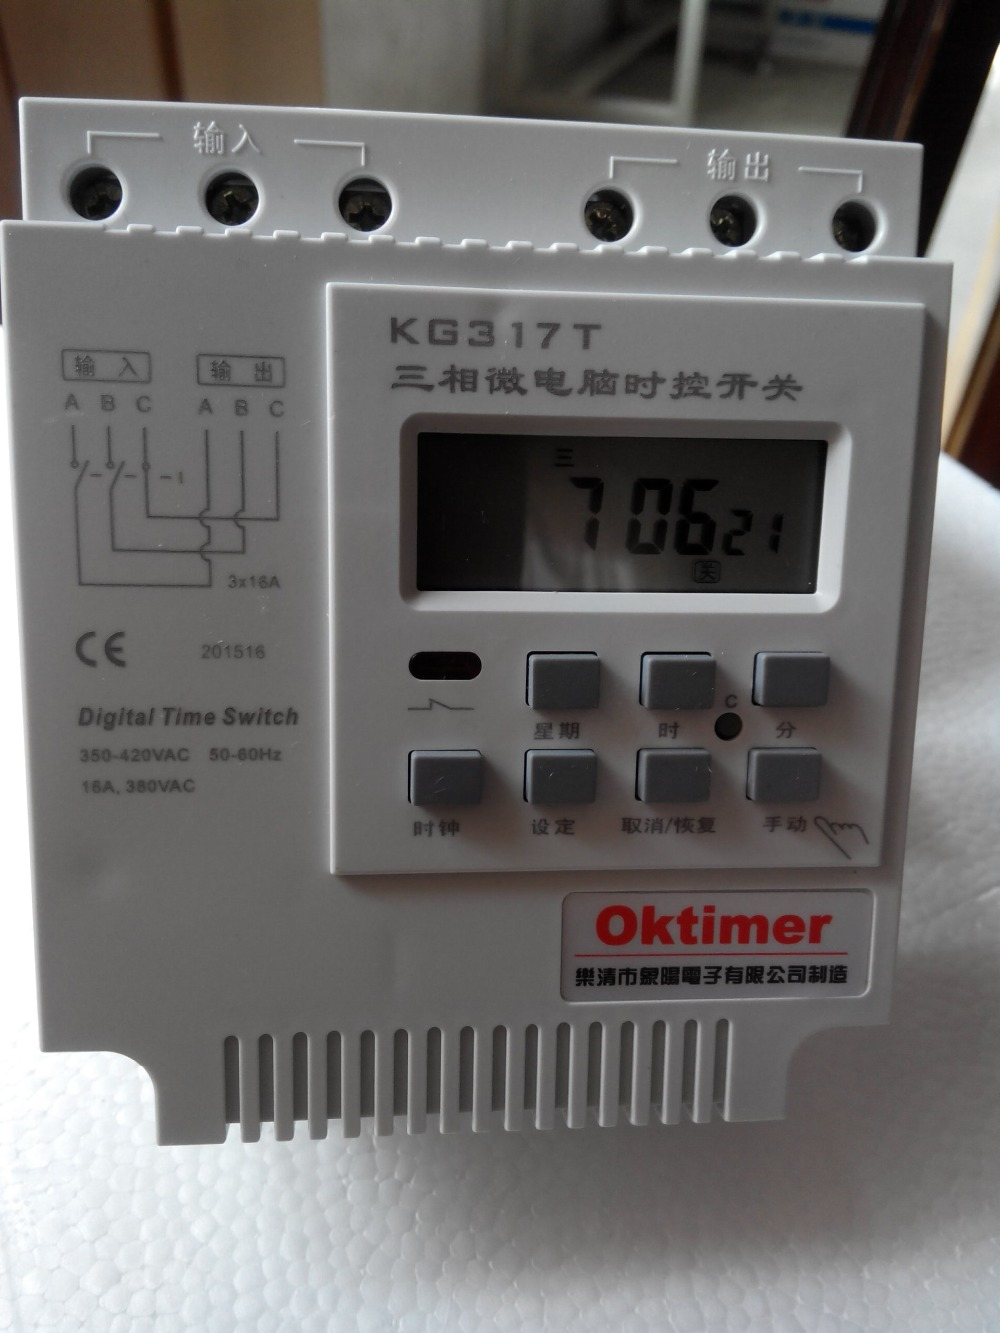 AC 380V 50-60HZ 16A 35mm DIN Rail Power Supply Automatic Controller Timer Switch KG317T 3 Phase Control 2 Wires sinotimer 12v ac dc control power timer 50 hz 24 hours timer switch control high quality time relay electronic instrument